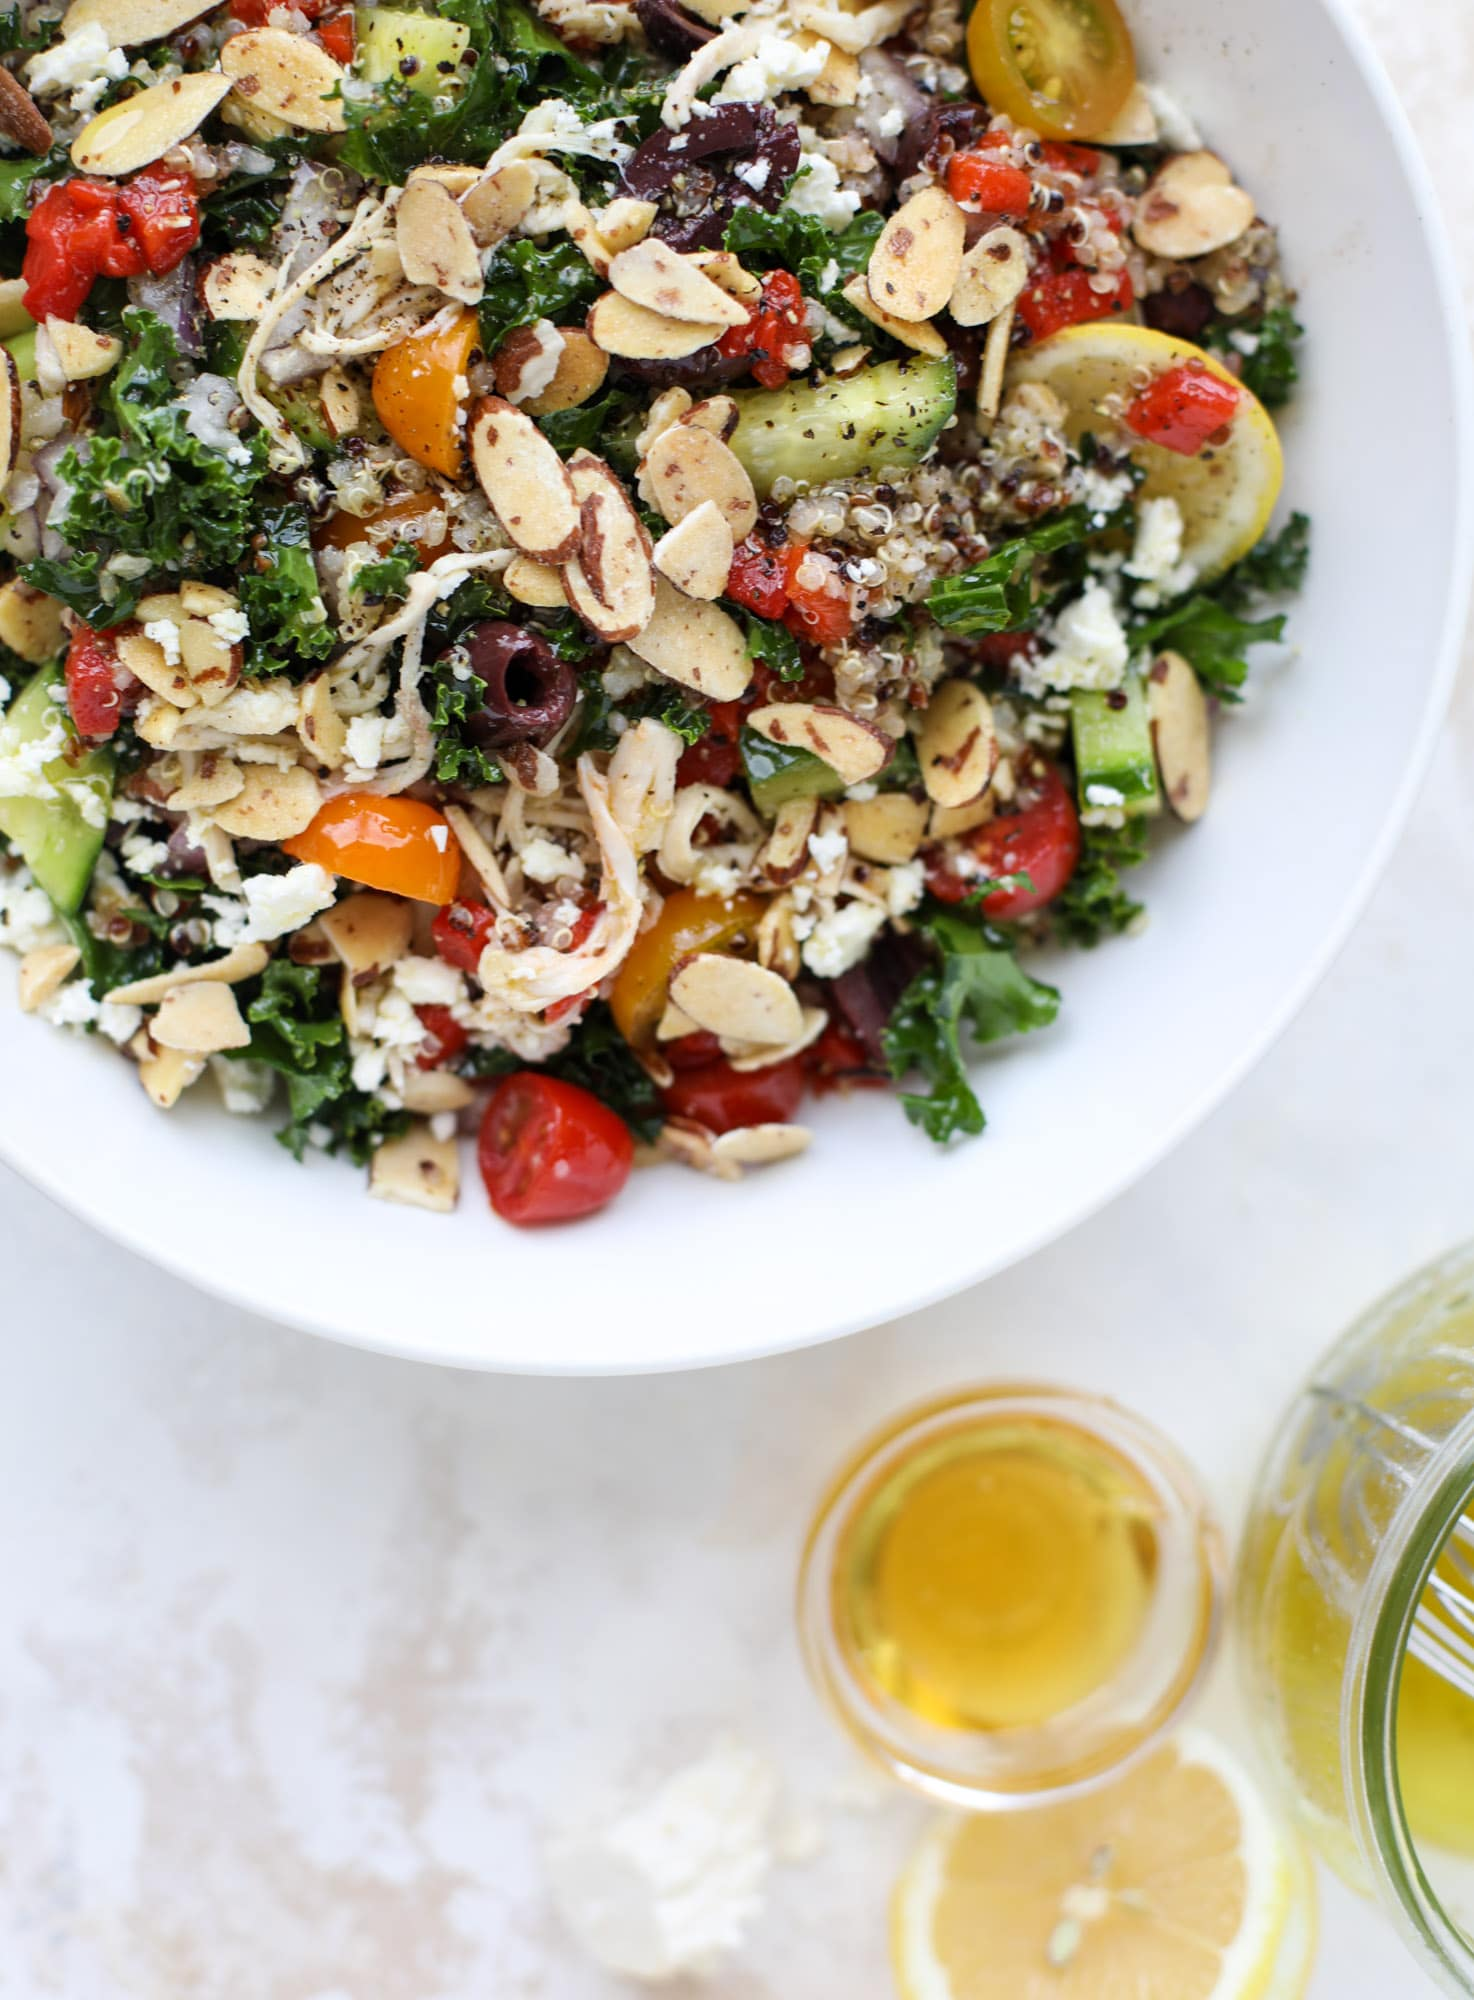 This mediterranean kale and quinoa salad is a copycat for the delicious Panera Bread Modern Greek Salad with Chicken. Super easy and satisfying! I howsweeteats.com #mediterranean #kalesalad